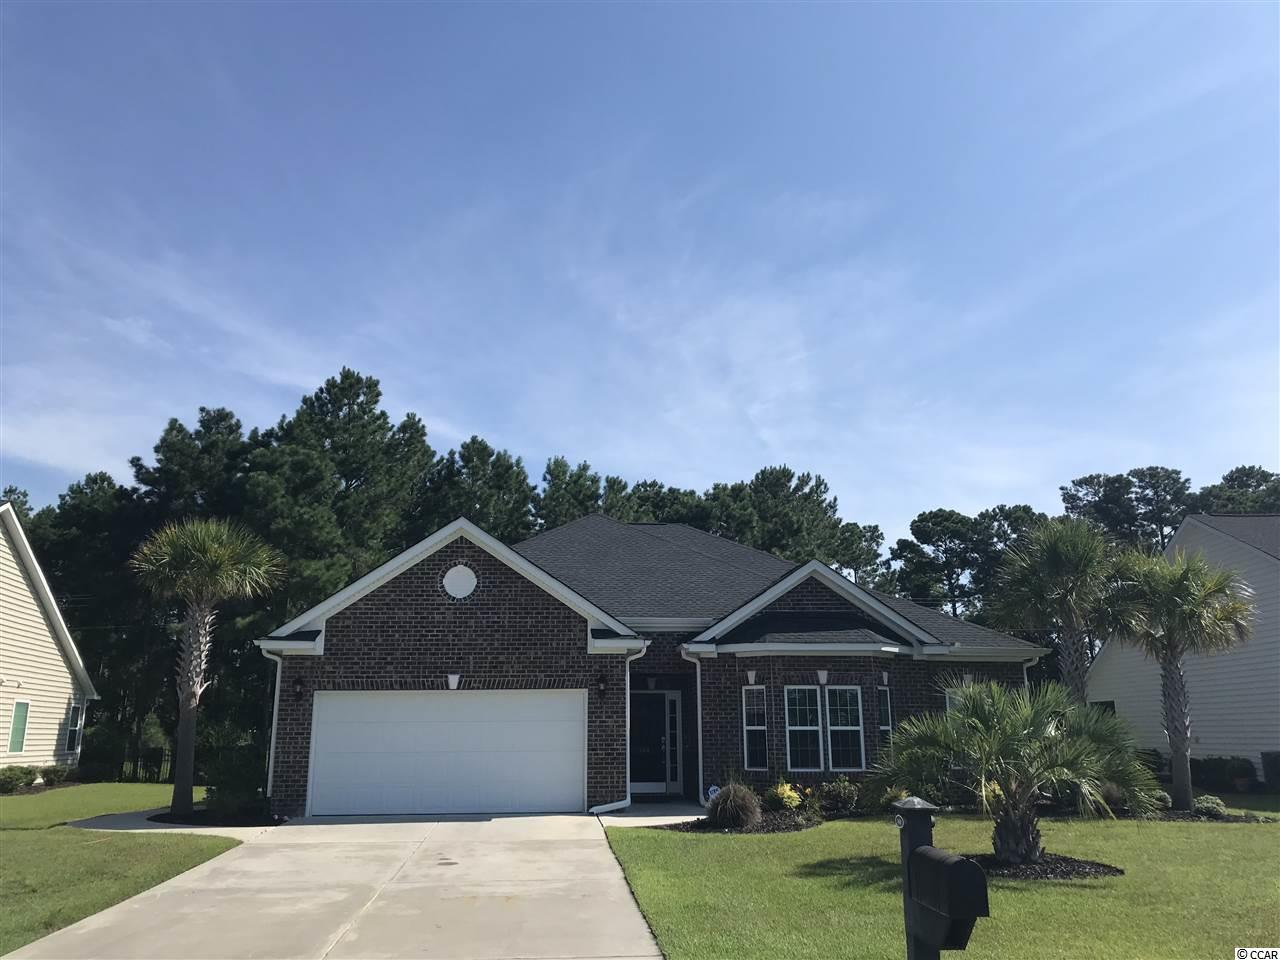 """LOOK NO FURTHER! This is the home you have been looking for! Welcome to Brookefield Estates, a natural gas community, and the extremely popular Magnolia model! This amazing 3bed/2.5bath has been extremely well cared for and it will show as soon as you walk through the door. This has been a 2nd home and can be completely turn key as ALL appliances are included and the furniture is negotiable. 144 Shenandoah sits on an oversized lot complete with irrigation, palm trees and mature landscaping including beautiful Canna plants surrounding the patio. This home has a natural flow starting in the foyer with decorative inlays and then moves forward into the great room. Gorgeous hardwood flows through all living areas with carpet in the bedrooms. To the right of the foyer is the formal dining room complete with wainscoting and a large bay window allowing for ample natural light. The open concept kitchen neighbors the dining room and is equipped with a work island, upgraded 42"""" cabinets (which all include roll trays for easy storage), granite countertops, a HUGE walk in pantry, work desk, SS appliances, and breakfast nook. The middle of the home contains the great room with recessed lighting, perfect for entertaining or relaxing on those quiet nights. This home features a split bedroom plan allowing for plenty of privacy in the master suite. The master suite comes with separate """"his"""" and """"hers"""" closets, separate """"his"""" and """"hers"""" vanities, walk-in shower, and garden tub. Towards the rear of the home you will find the oversized Carolina room with the rear wall full of windows. The screened porch sits off the back of the home and of course this home backs up to woods to allow for 100% privacy. 144 Shenandoah is just minutes away from everything Murrells Inlet and Myrtle Beach have to offer, yet is tucked into the quiet neighborhood of Brookefield Estates, complete with a community pool and play area. Put this home on your short list of homes to see as it's sure not to last long!"""